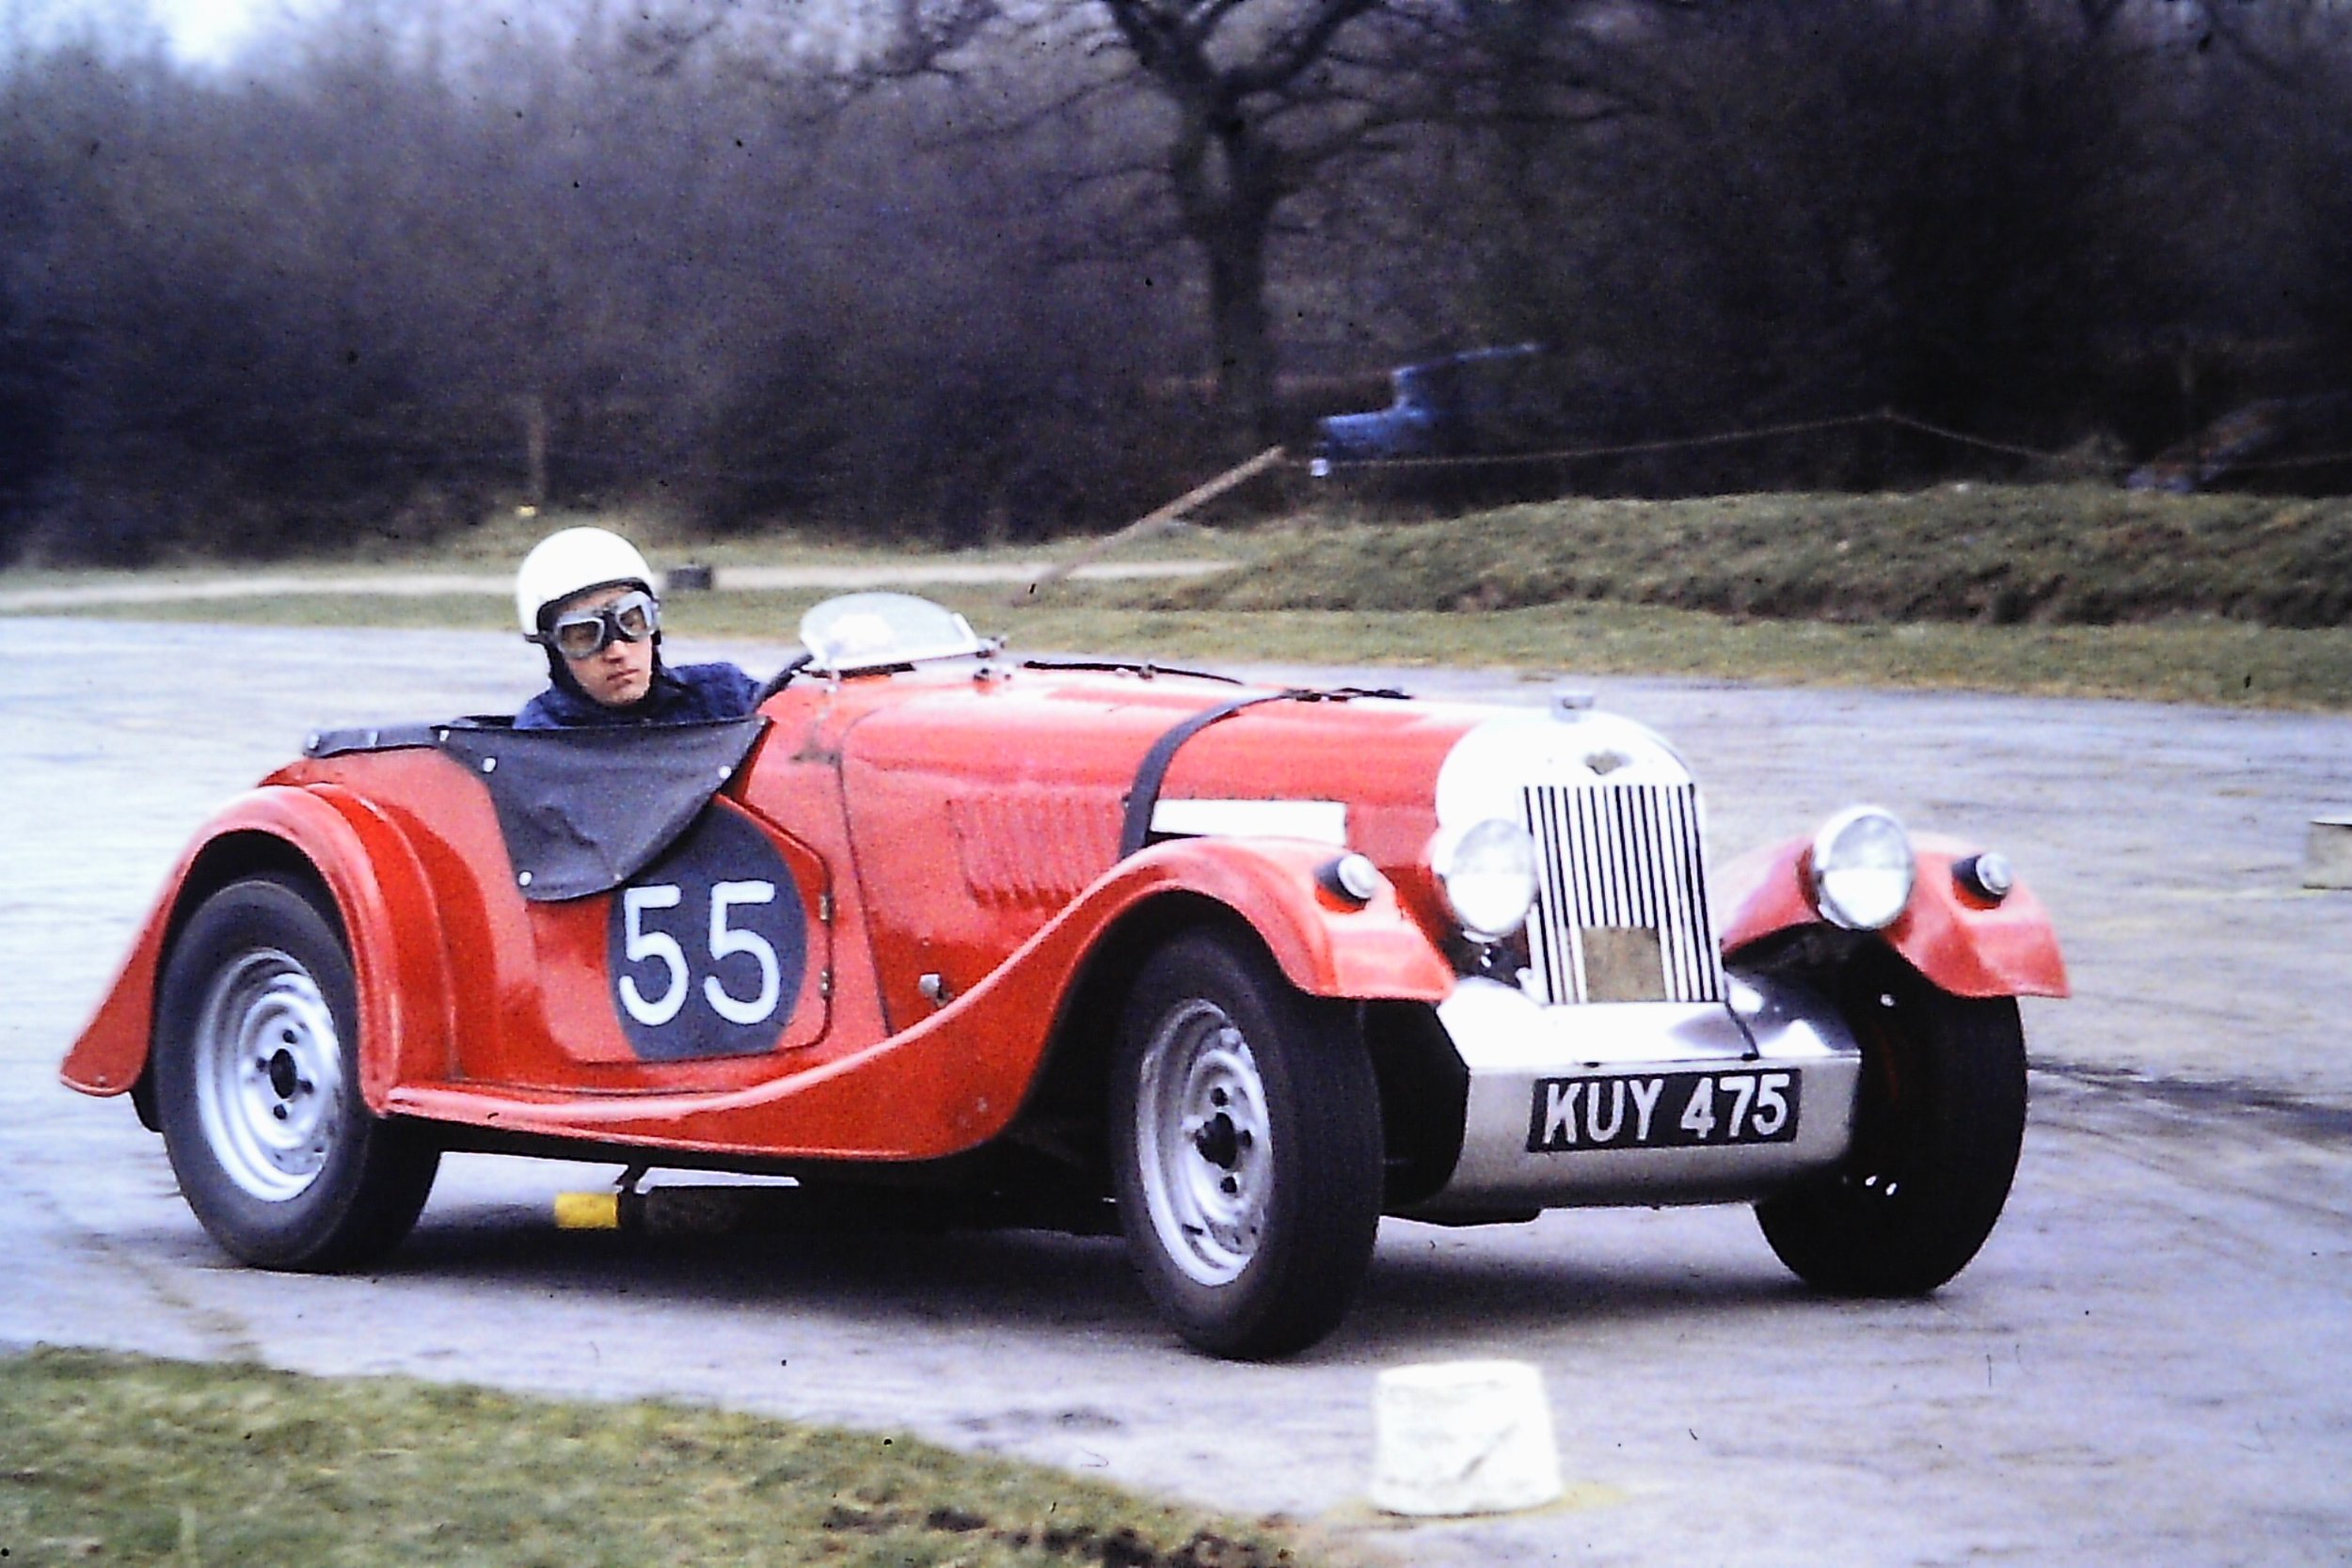 My 1952 Morgan +4 on its first outing at Mallory Park. Early race modified.